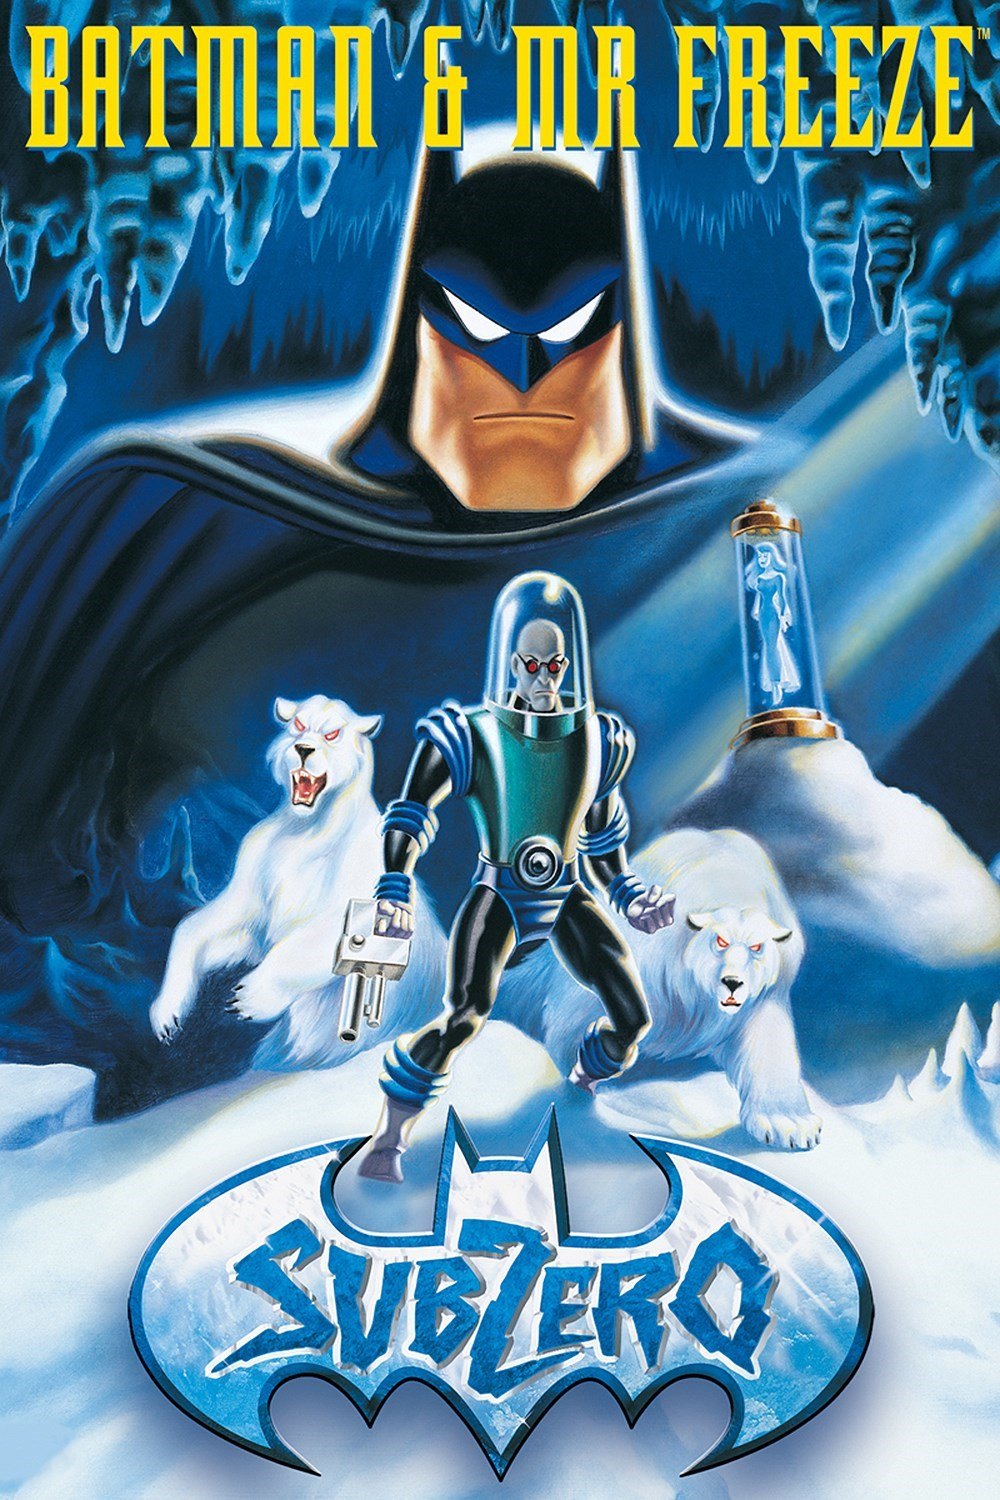 image Batman & Mr. Freeze: SubZero (1998) (V) Watch Full Movie Free Online